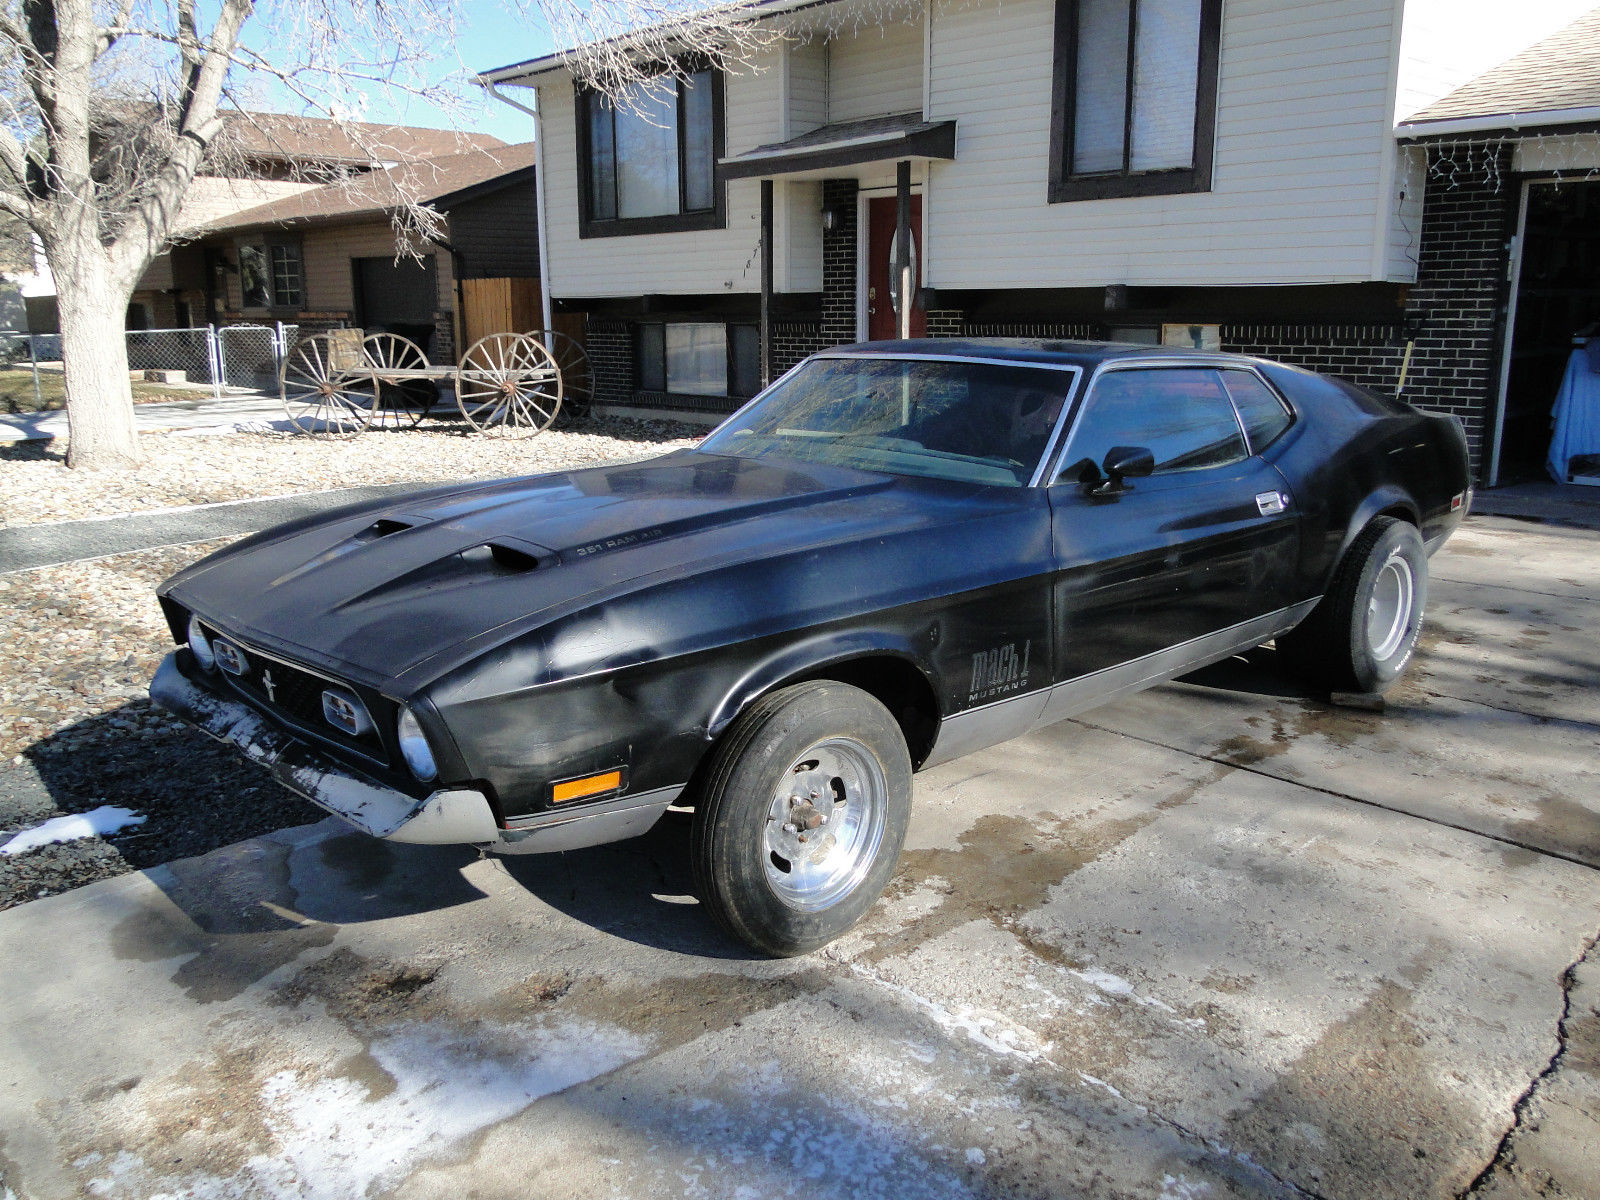 1972 Ford Mustang Mach 1 Q code 351 4v Sportsroof 71 73 project for